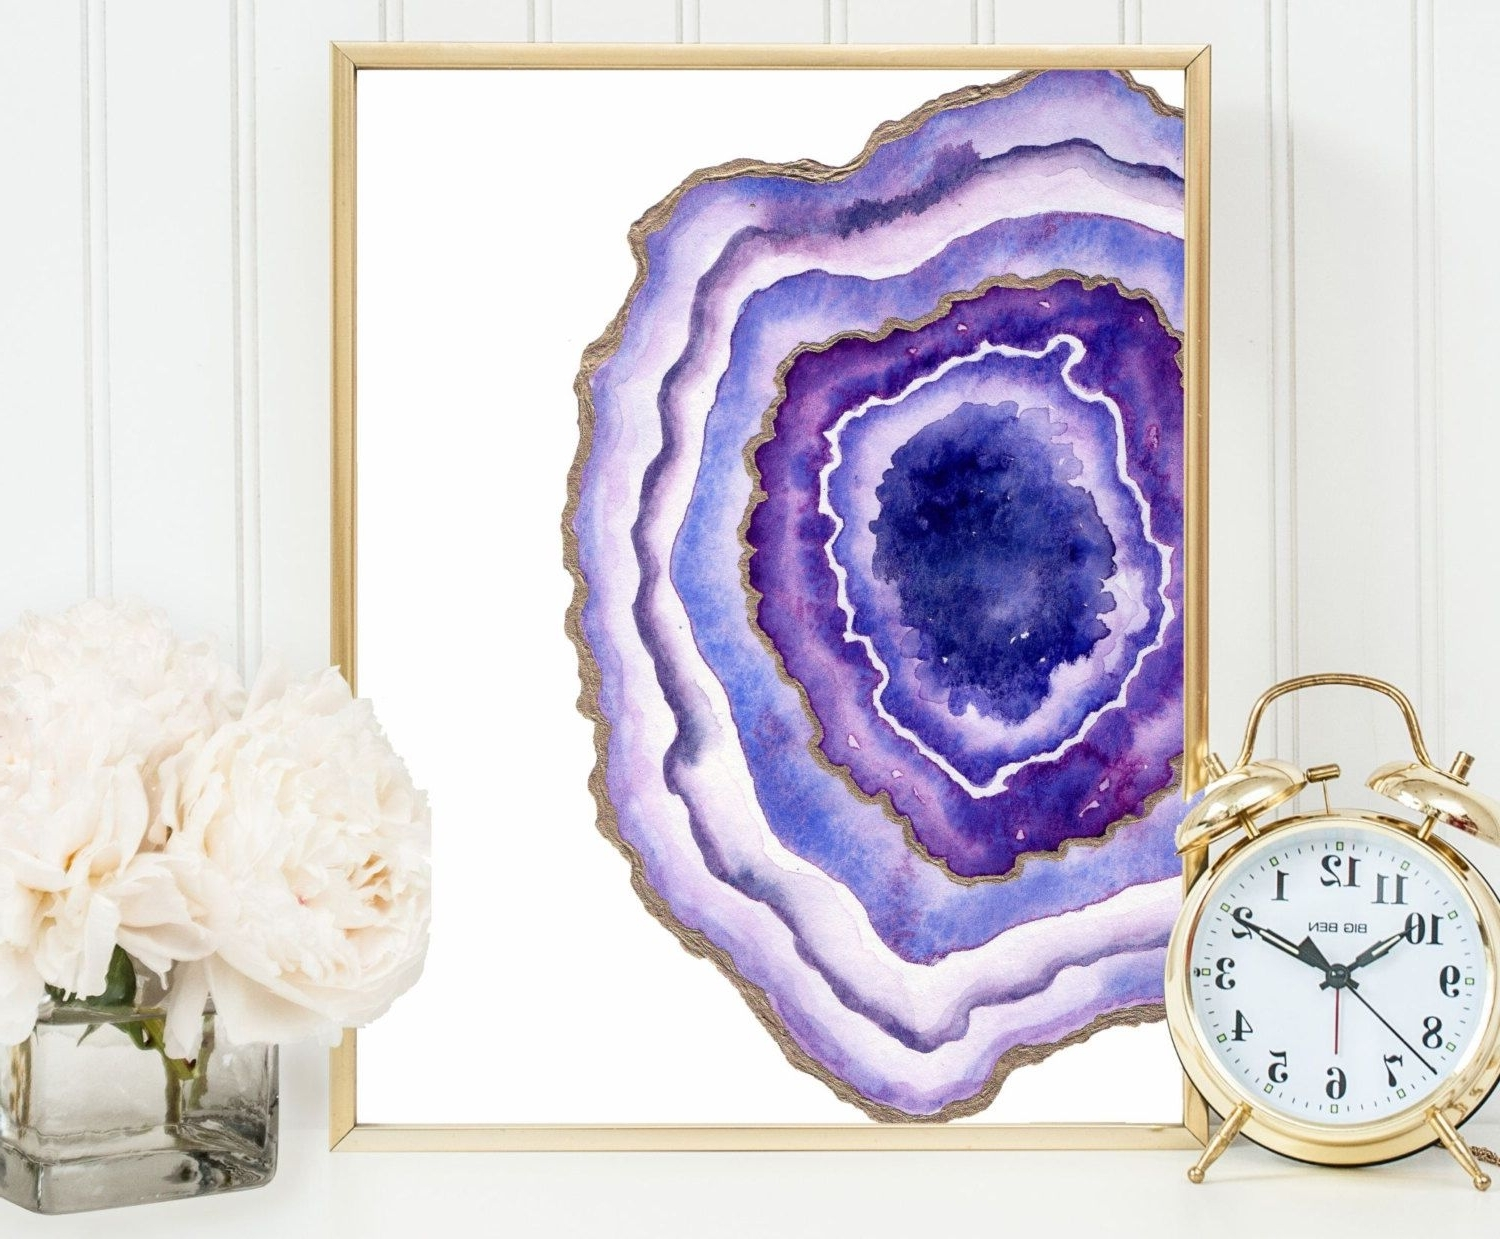 Famous Geode Agate Slice Art, Geode Print, Gemstone Wall Decor Watercolor Inside Agate Wall Art (View 12 of 15)